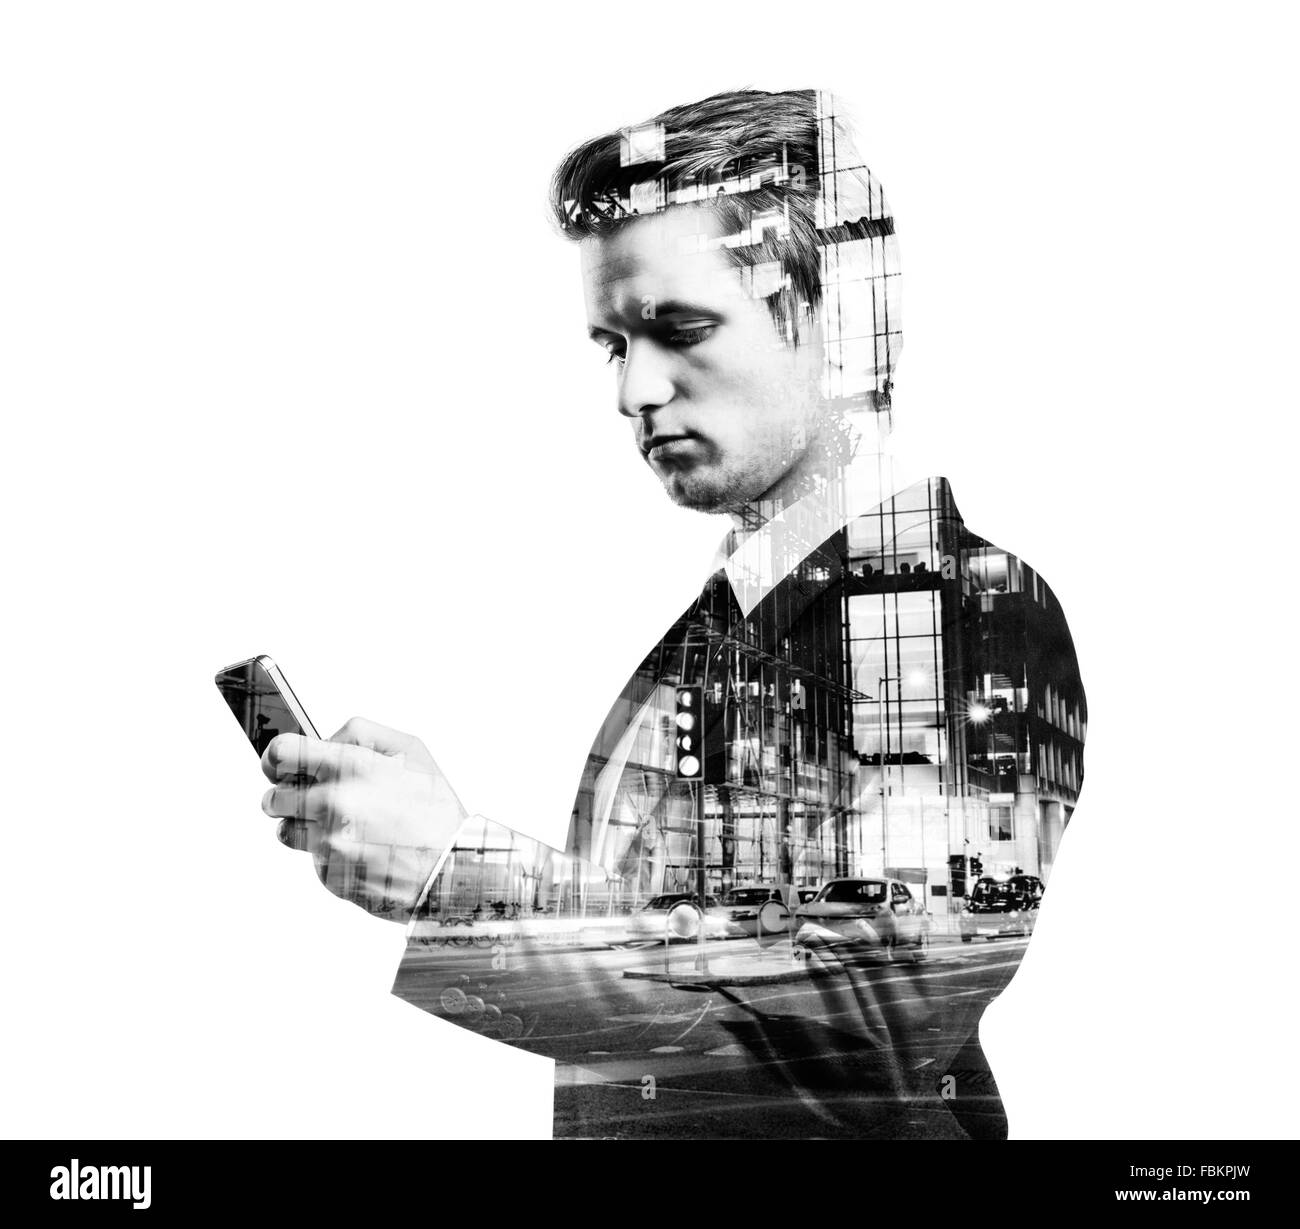 Double exposure of businessman. - Stock Image